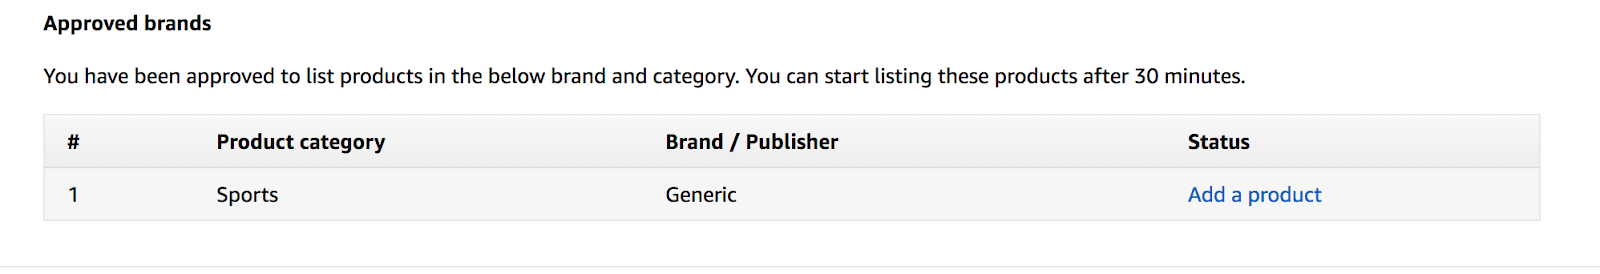 How To List Products On Amazon Without A Gtin Or Upc 2020 Update